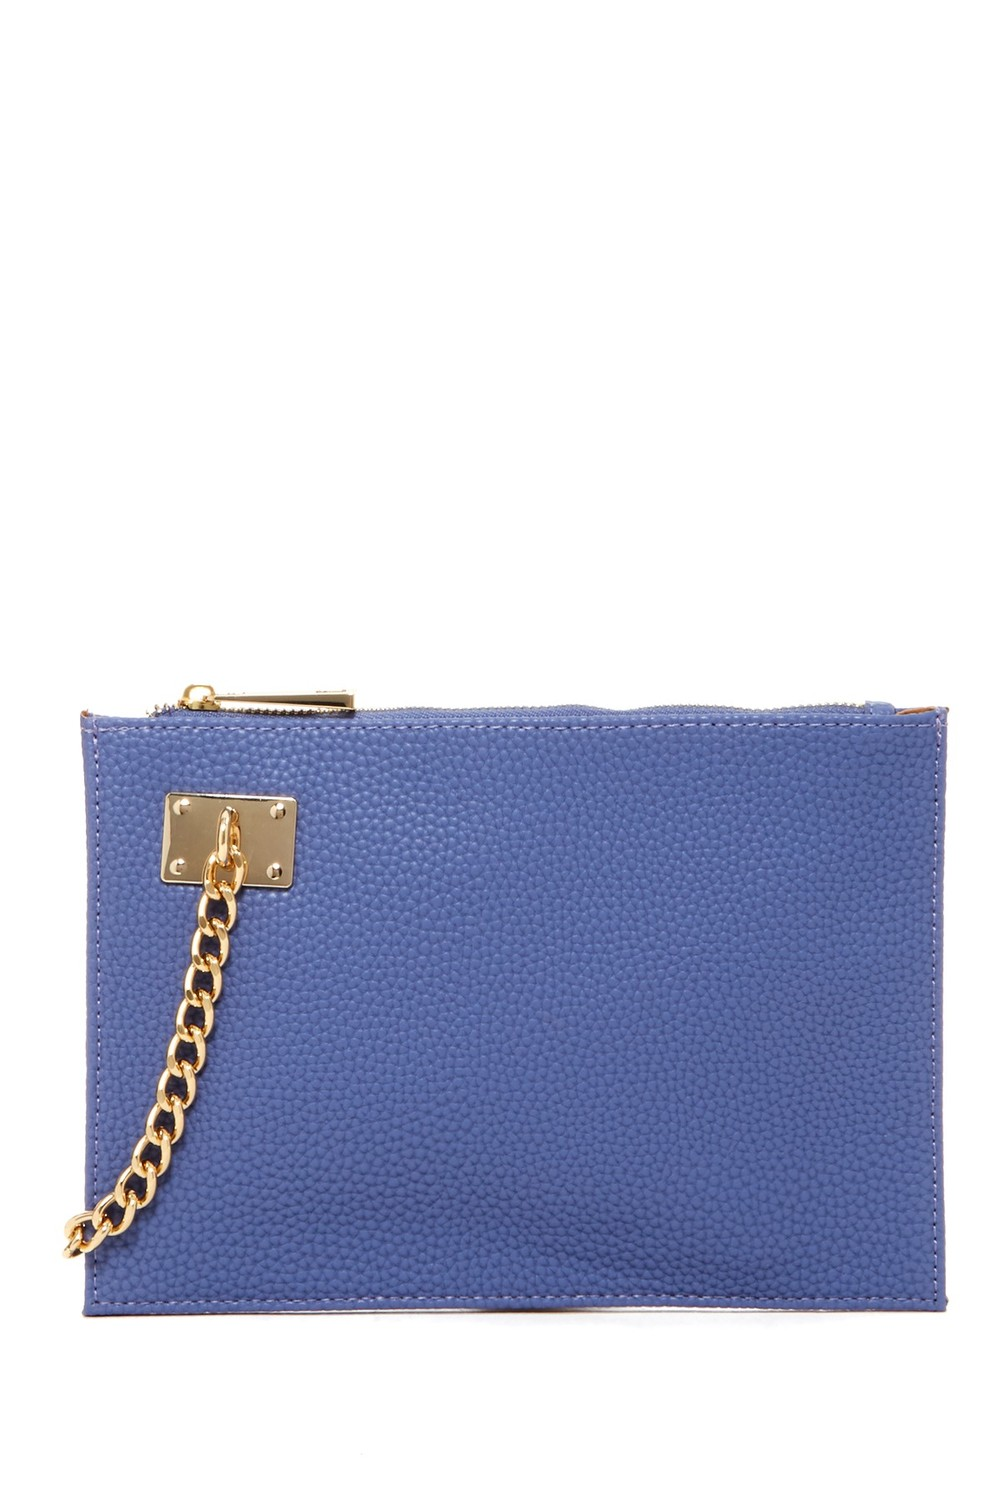 SR Squared by Sondra Roberts Pebbled Wristlet. Available in multiple colors. Nordstrom Rack. Was: $30 Now: $18.